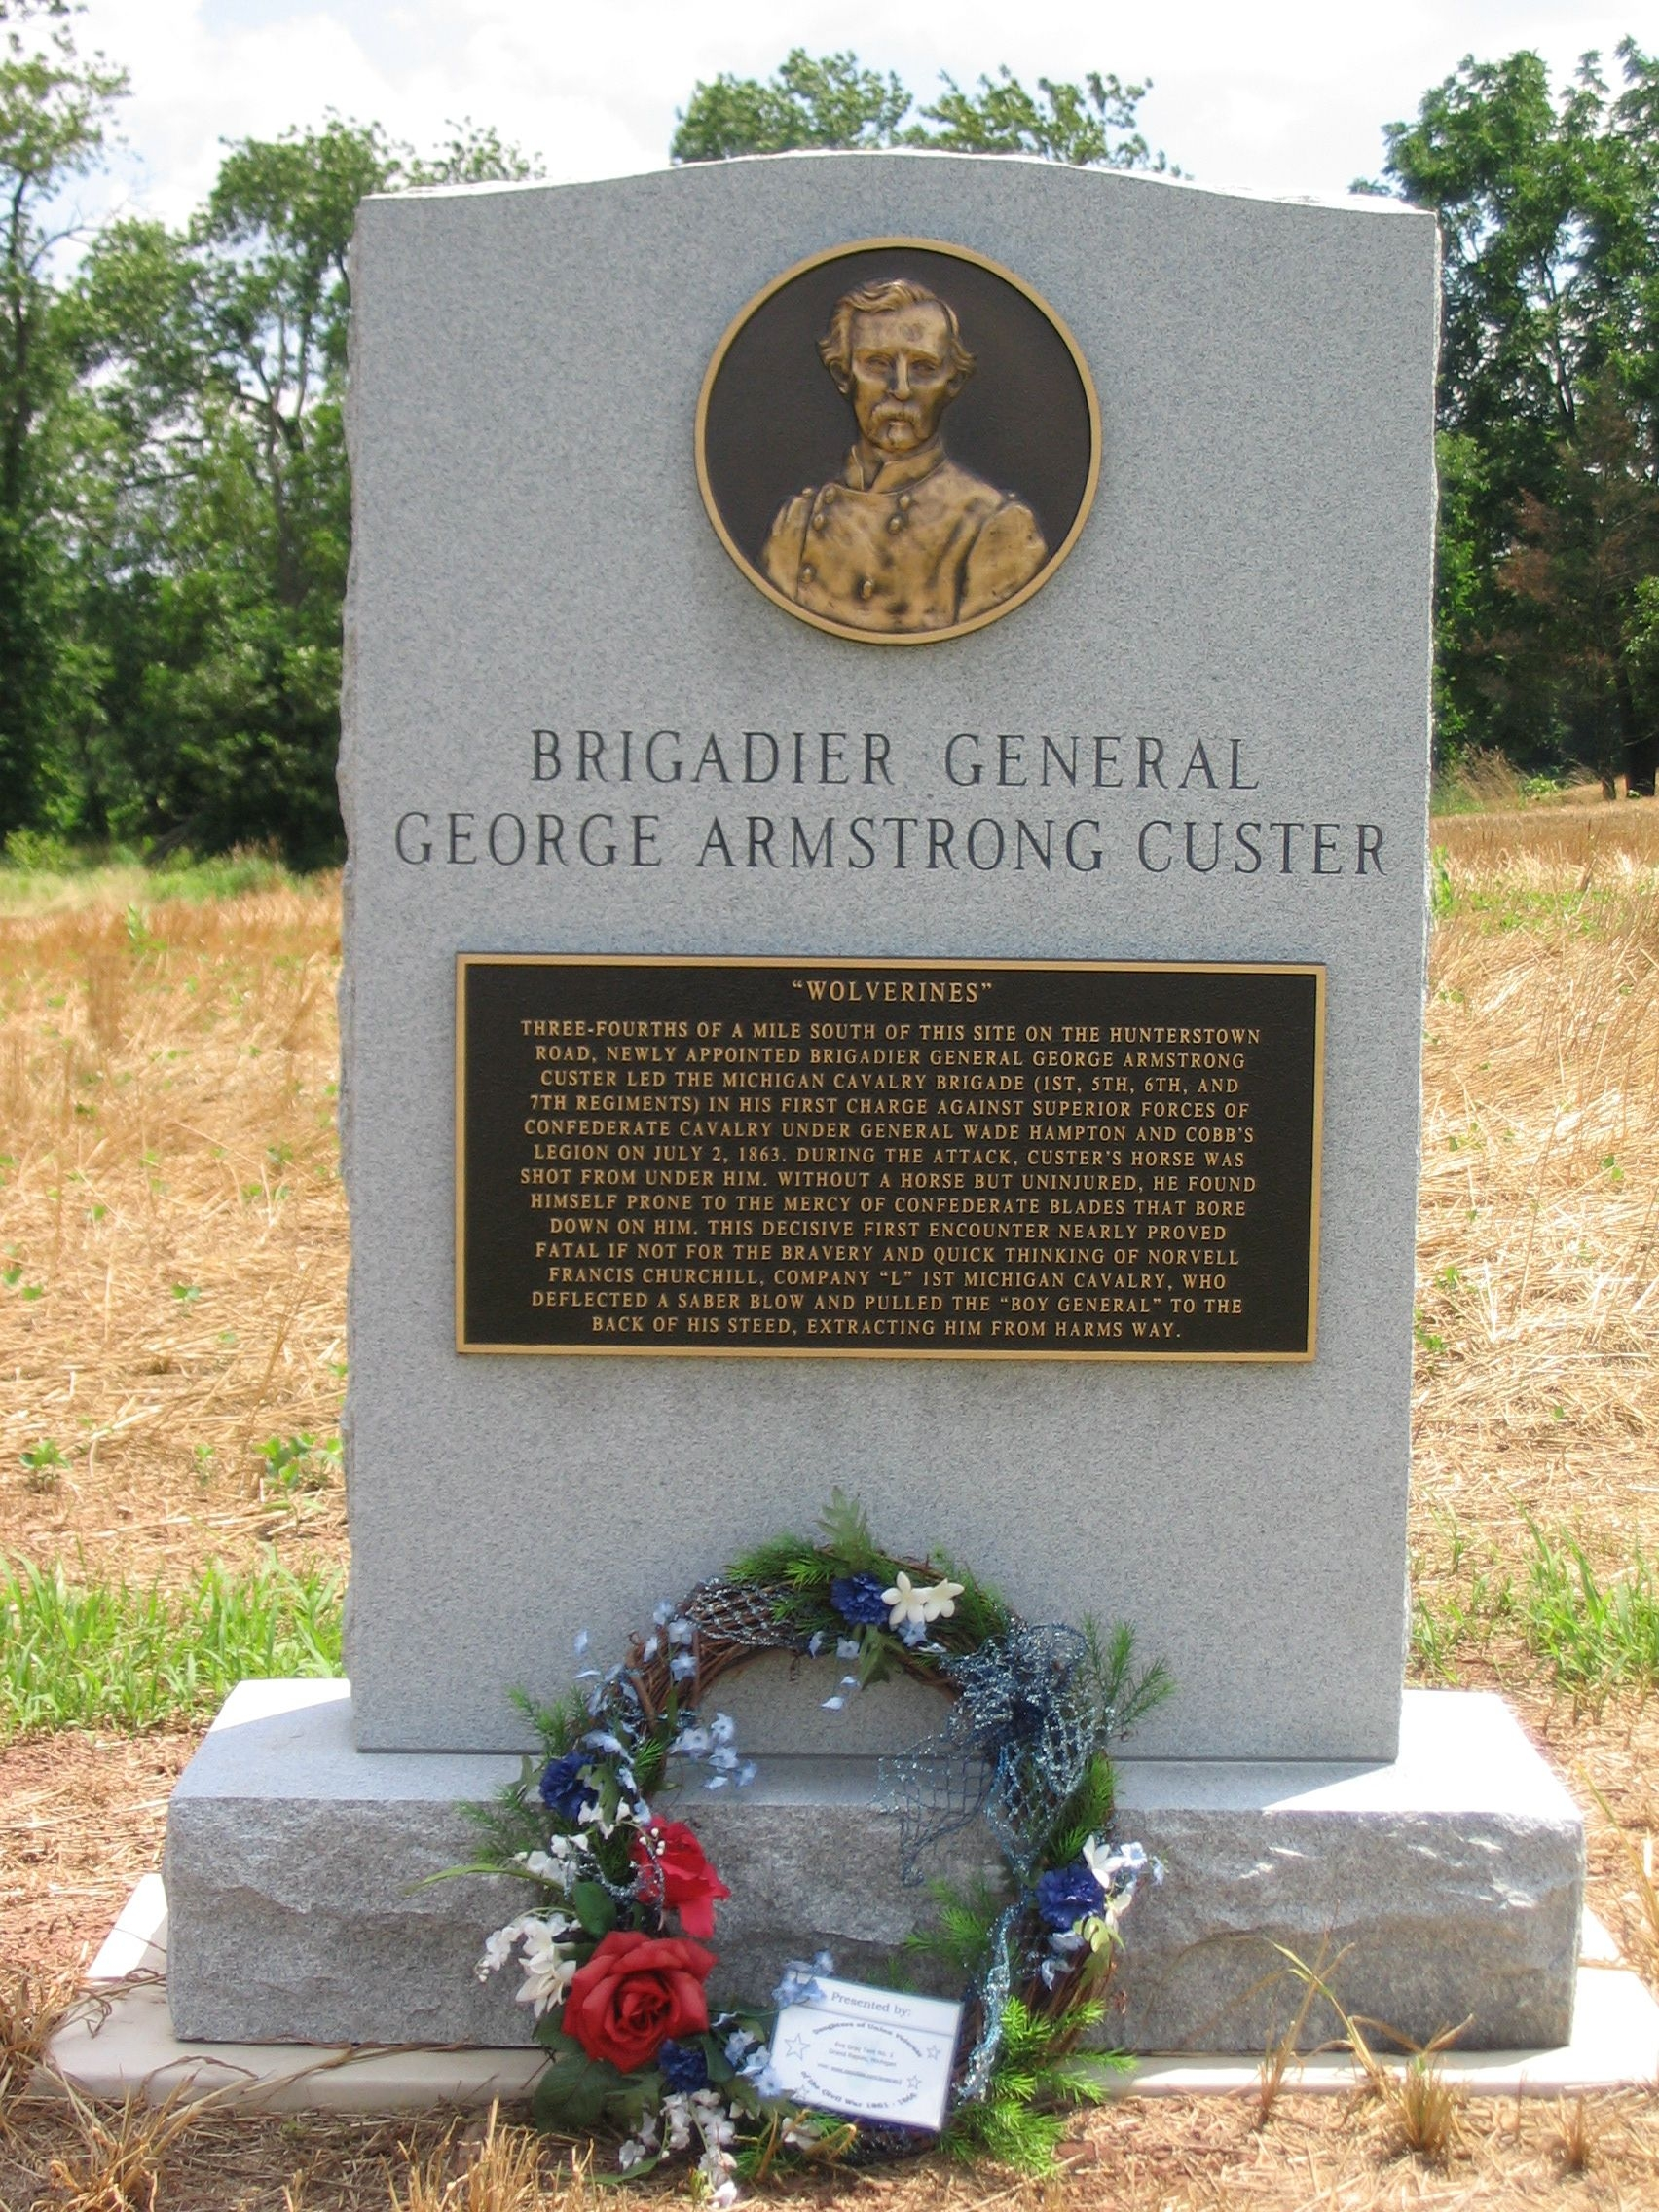 Brigadier General George Armstrong Custer Monument